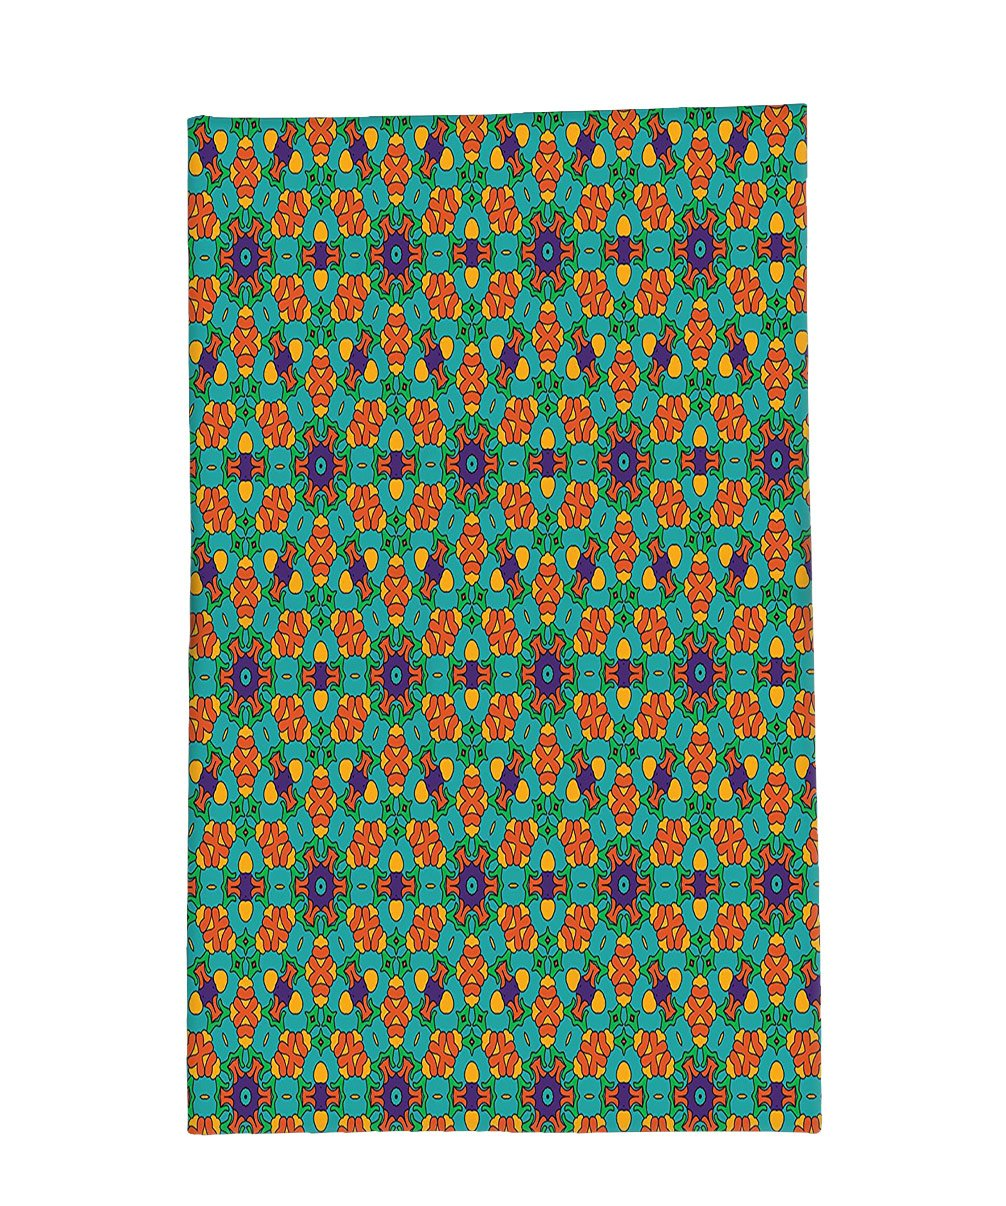 Interestlee Fleece Throw Blanket Orange Decor India Ethnic Design Lovers Floral Print Fern Green Marigold and Navy Blue